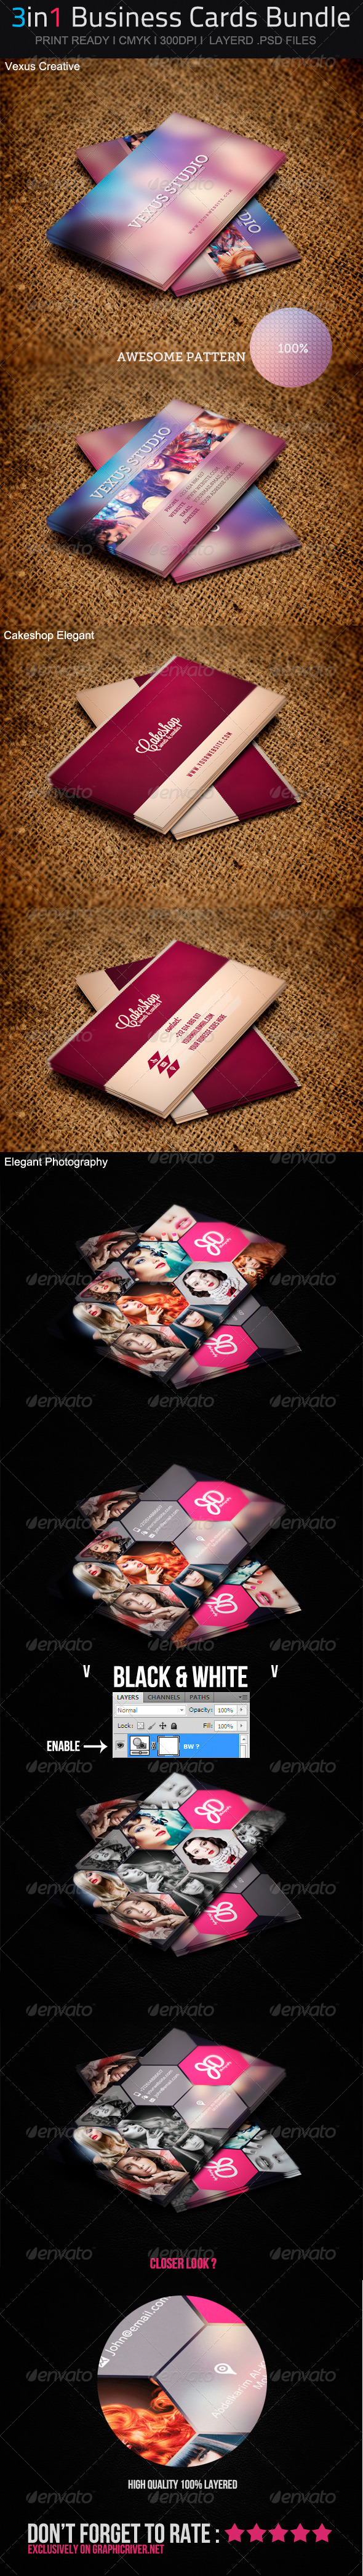 GraphicRiver 3in1 Business Cards Bundle 02 4998834